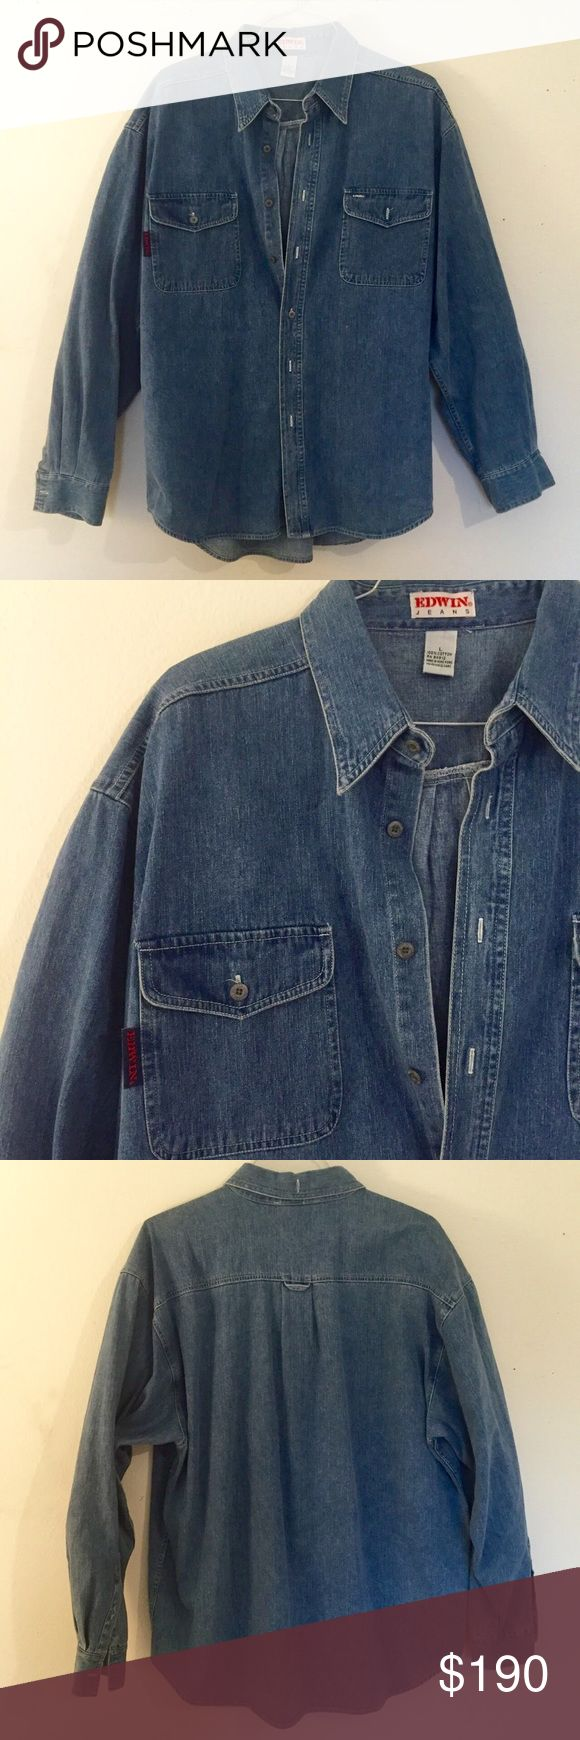 Edwin Jean Denim Button Up Heavy Shirt Jacket Lrg! Has been Dry Cleaned! Excellent Condition! Large and a heavier item! Edwin Jackets & Coats Lightweight & Shirt Jackets